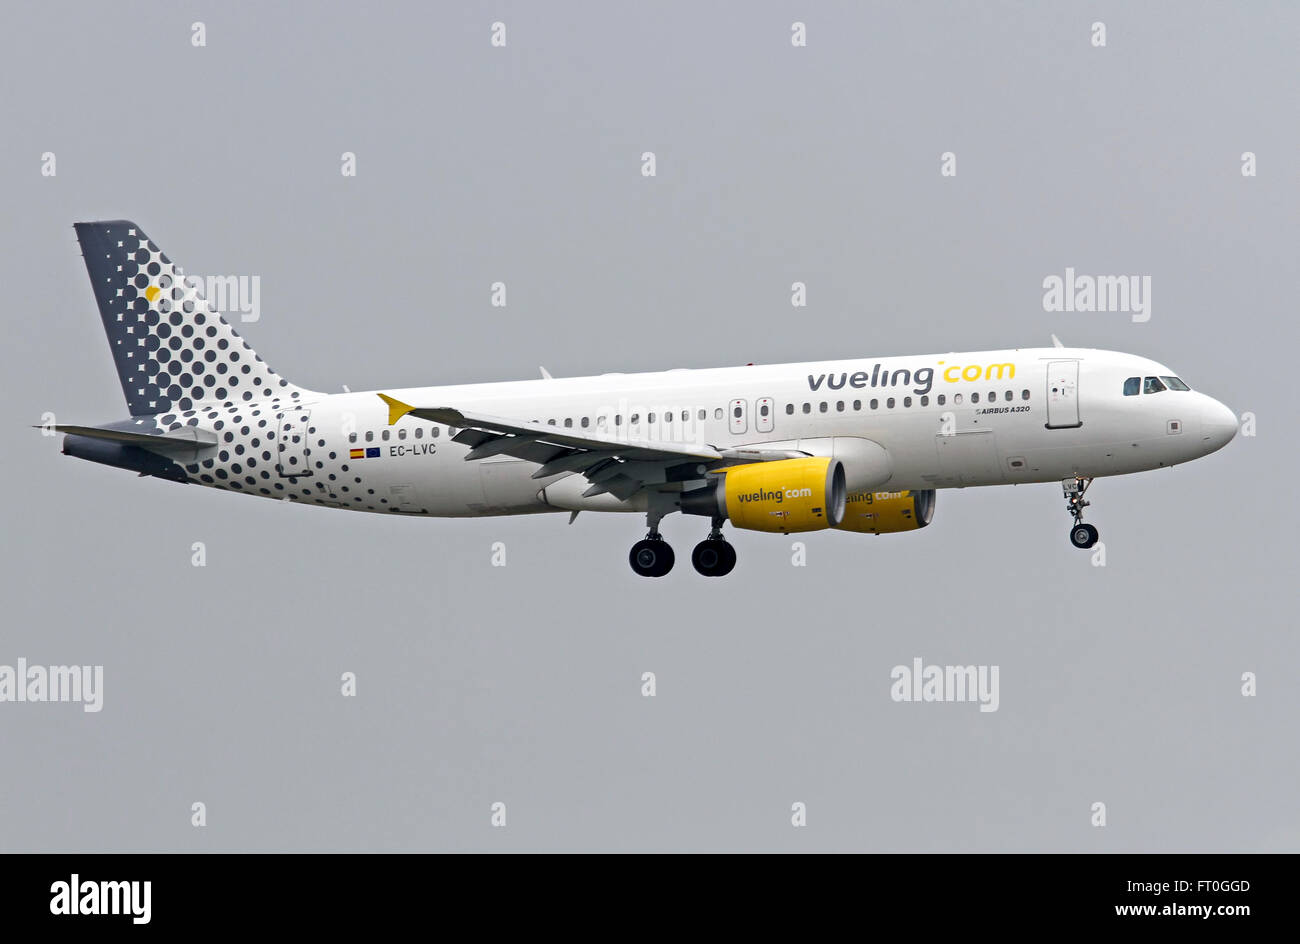 EC-LVC Vueling Airbus A320-200 - Stock Image